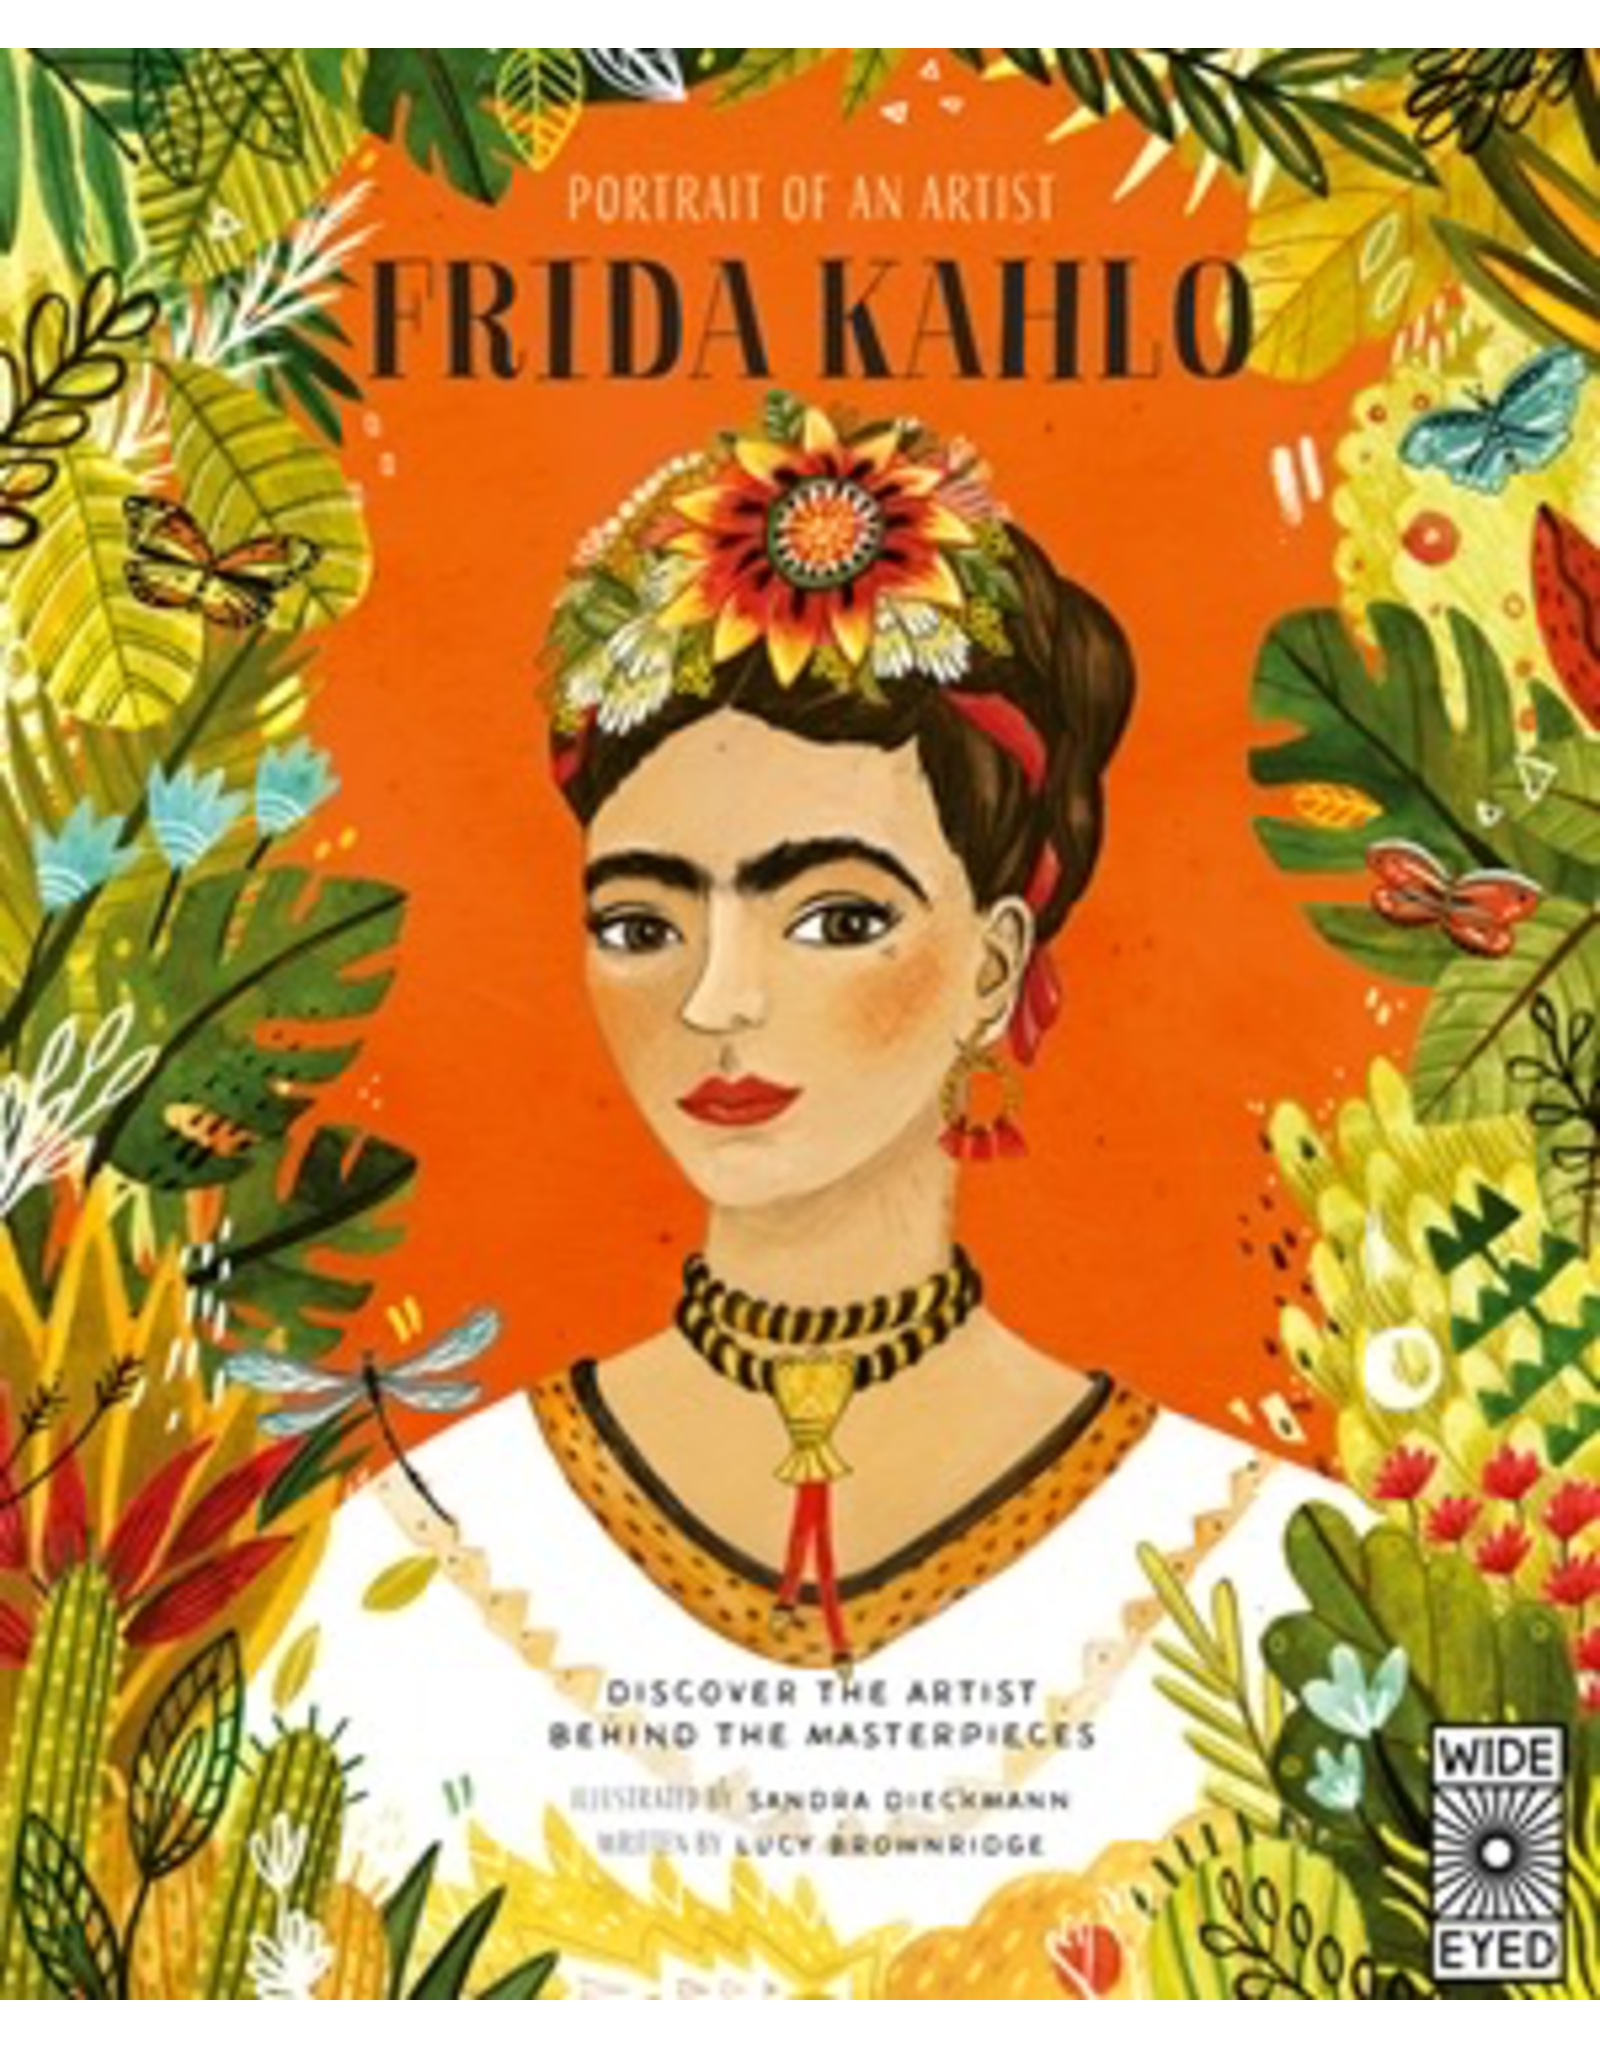 Hachette PORTRAIT OF AN ARTIST: FRIDA KAHLO by Lucy Brownridge